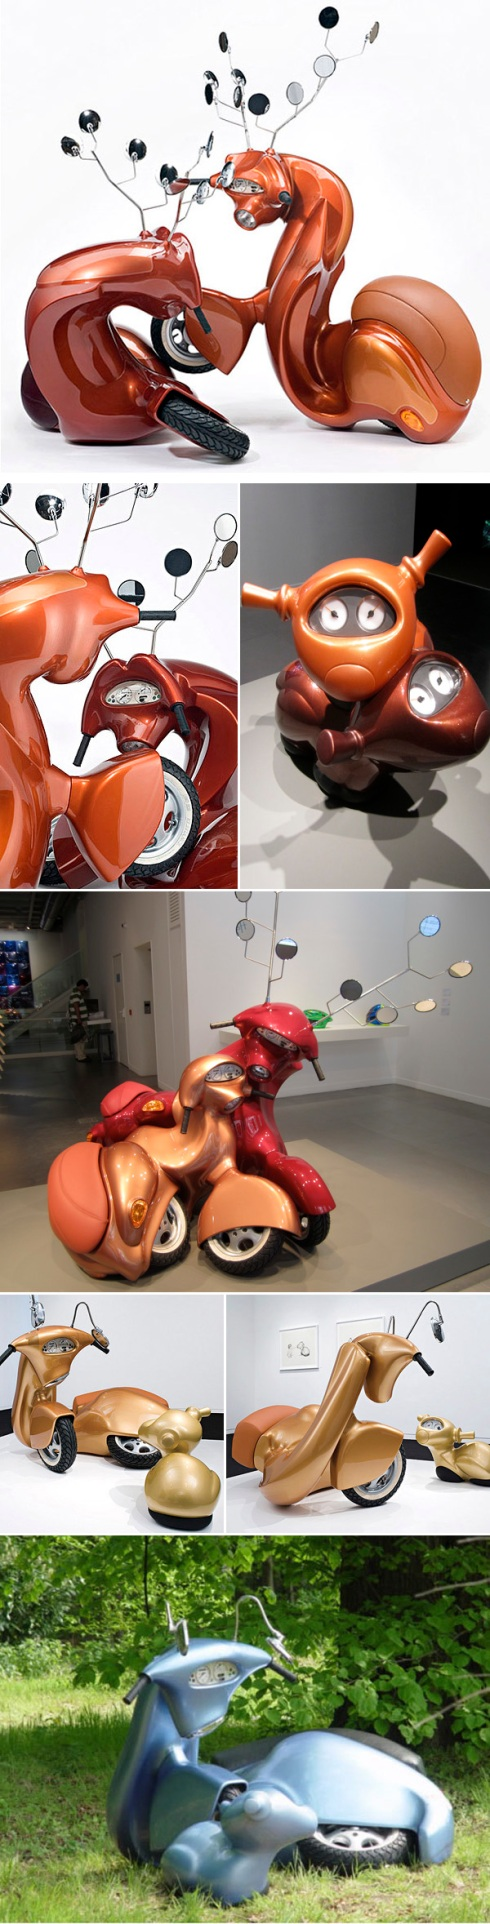 Contemporary art, vespas, creatures, sculpture